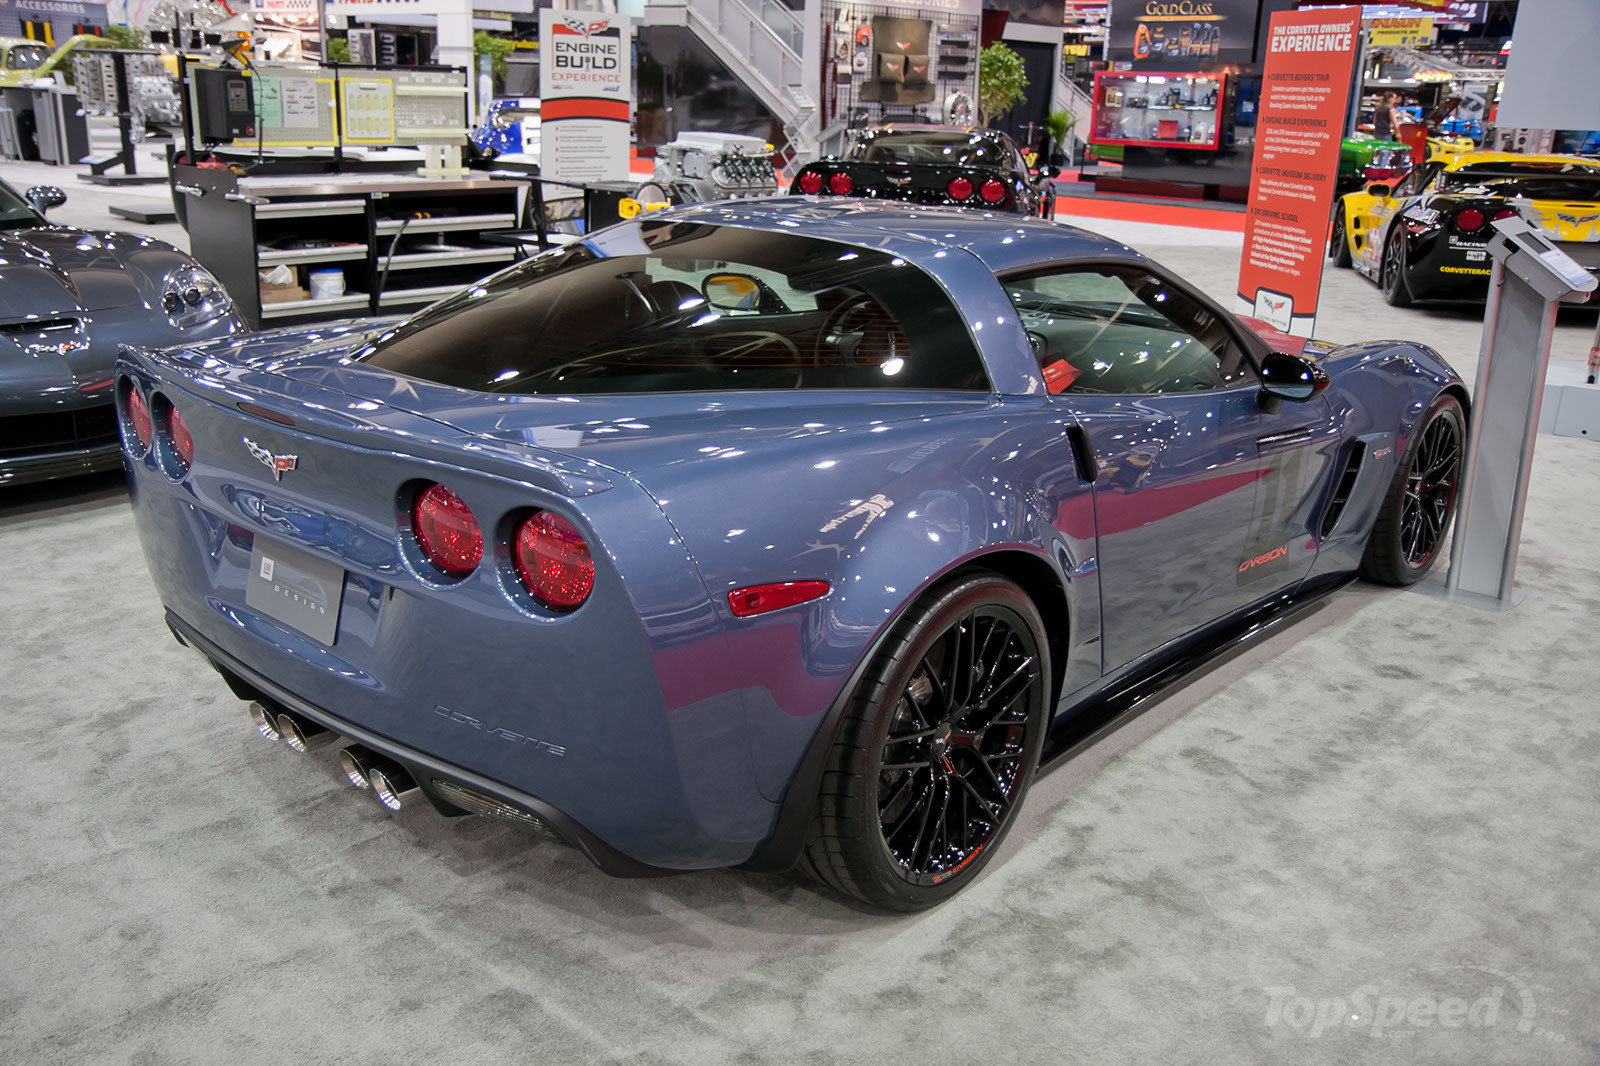 2011 chevrolet corvette z06 carbon limited edition picture 381271 car review top speed. Black Bedroom Furniture Sets. Home Design Ideas